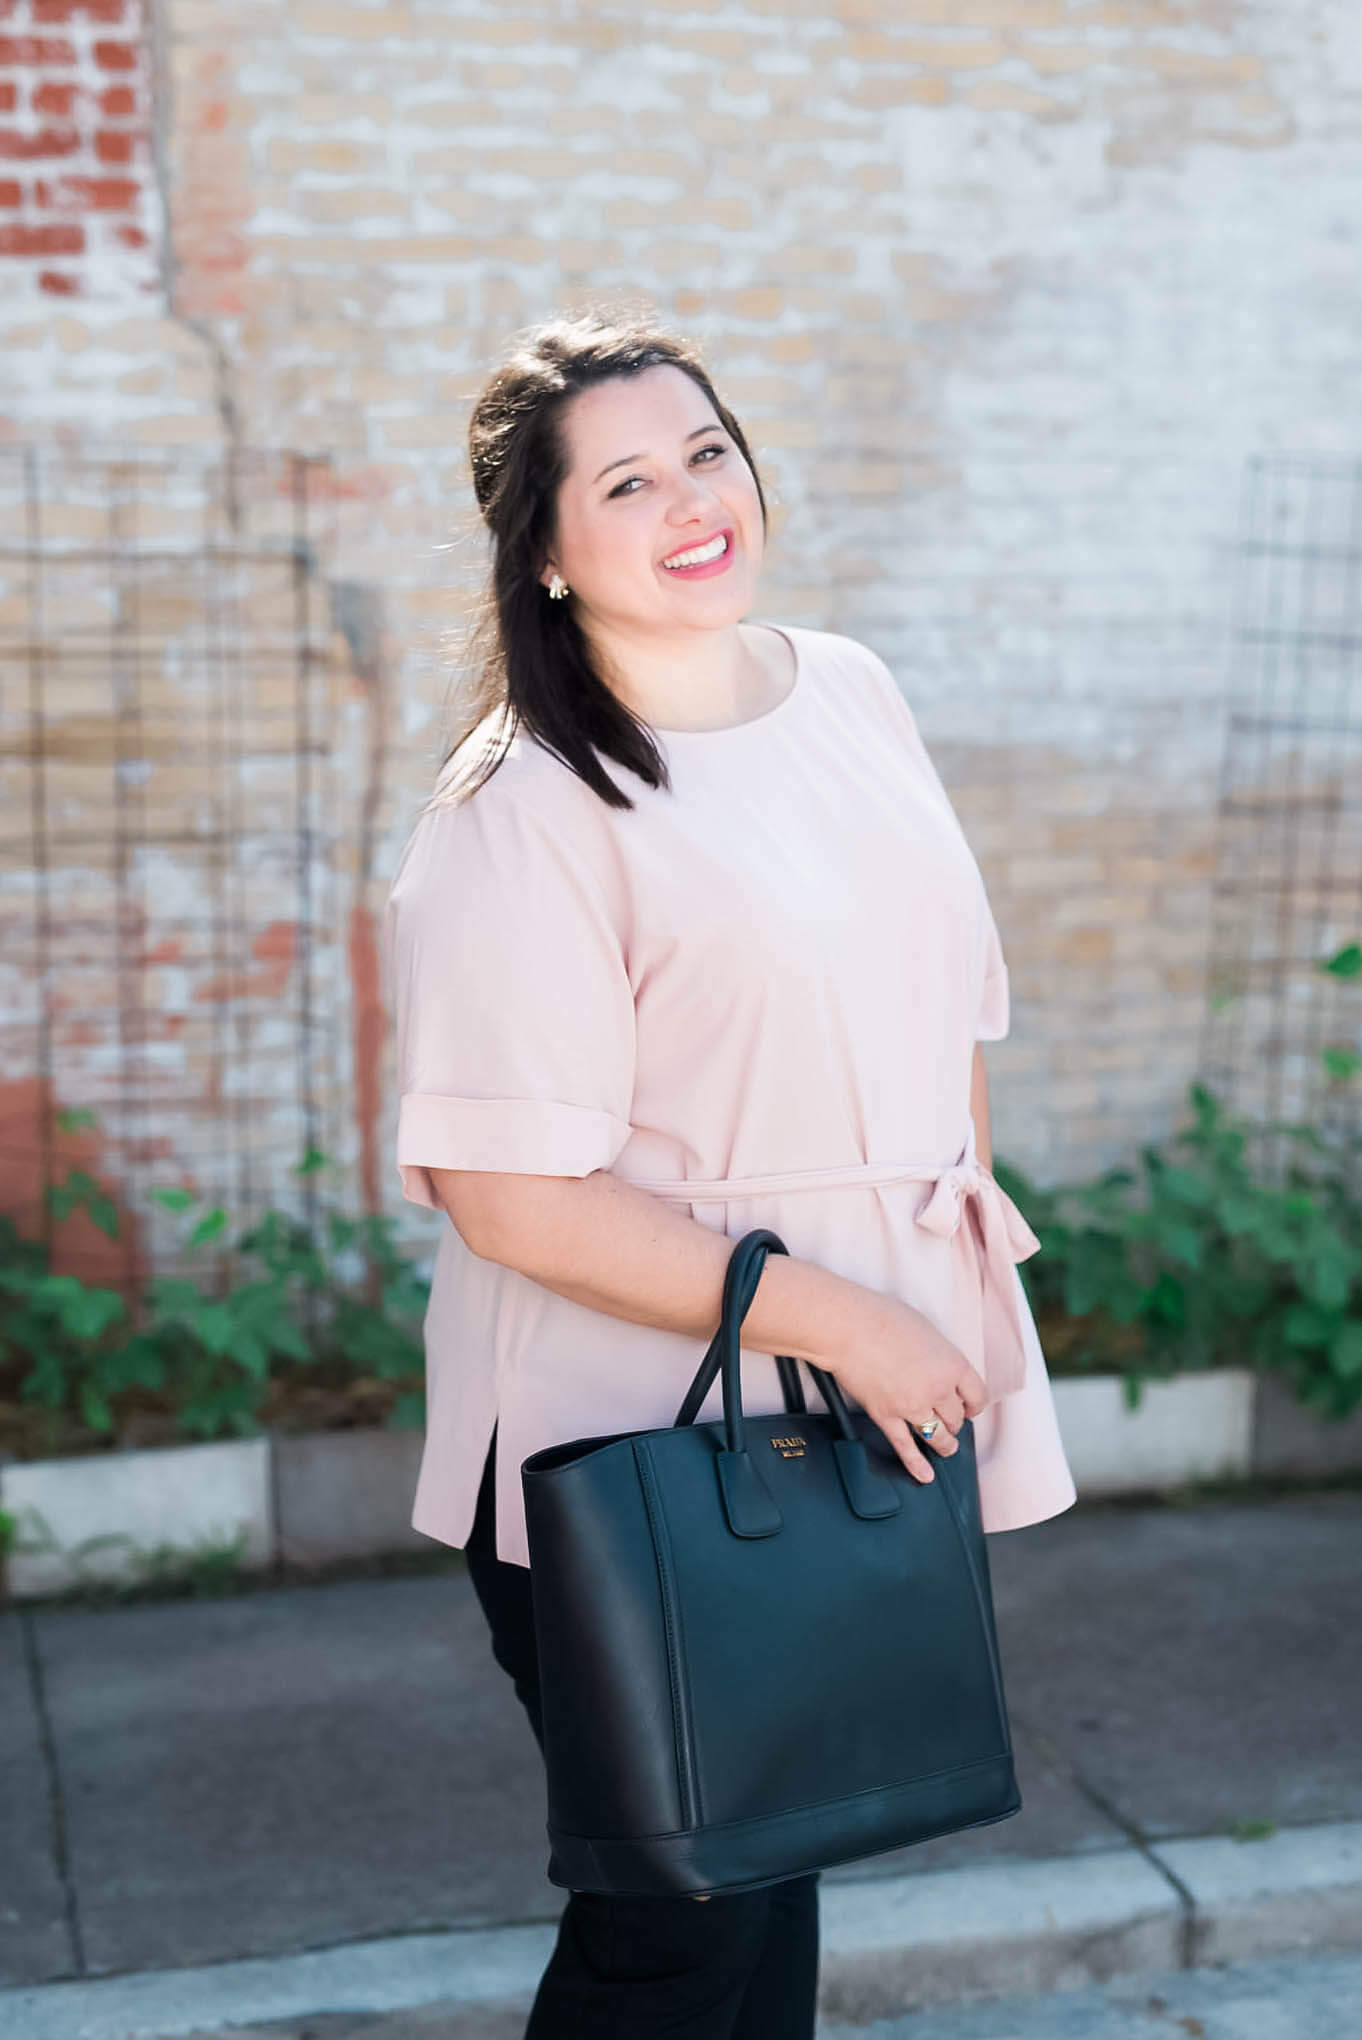 Work, Work, Work - The perfect business casual work attire to be a #girlboss | Something Gold, Something Blue a curvy fashion blog